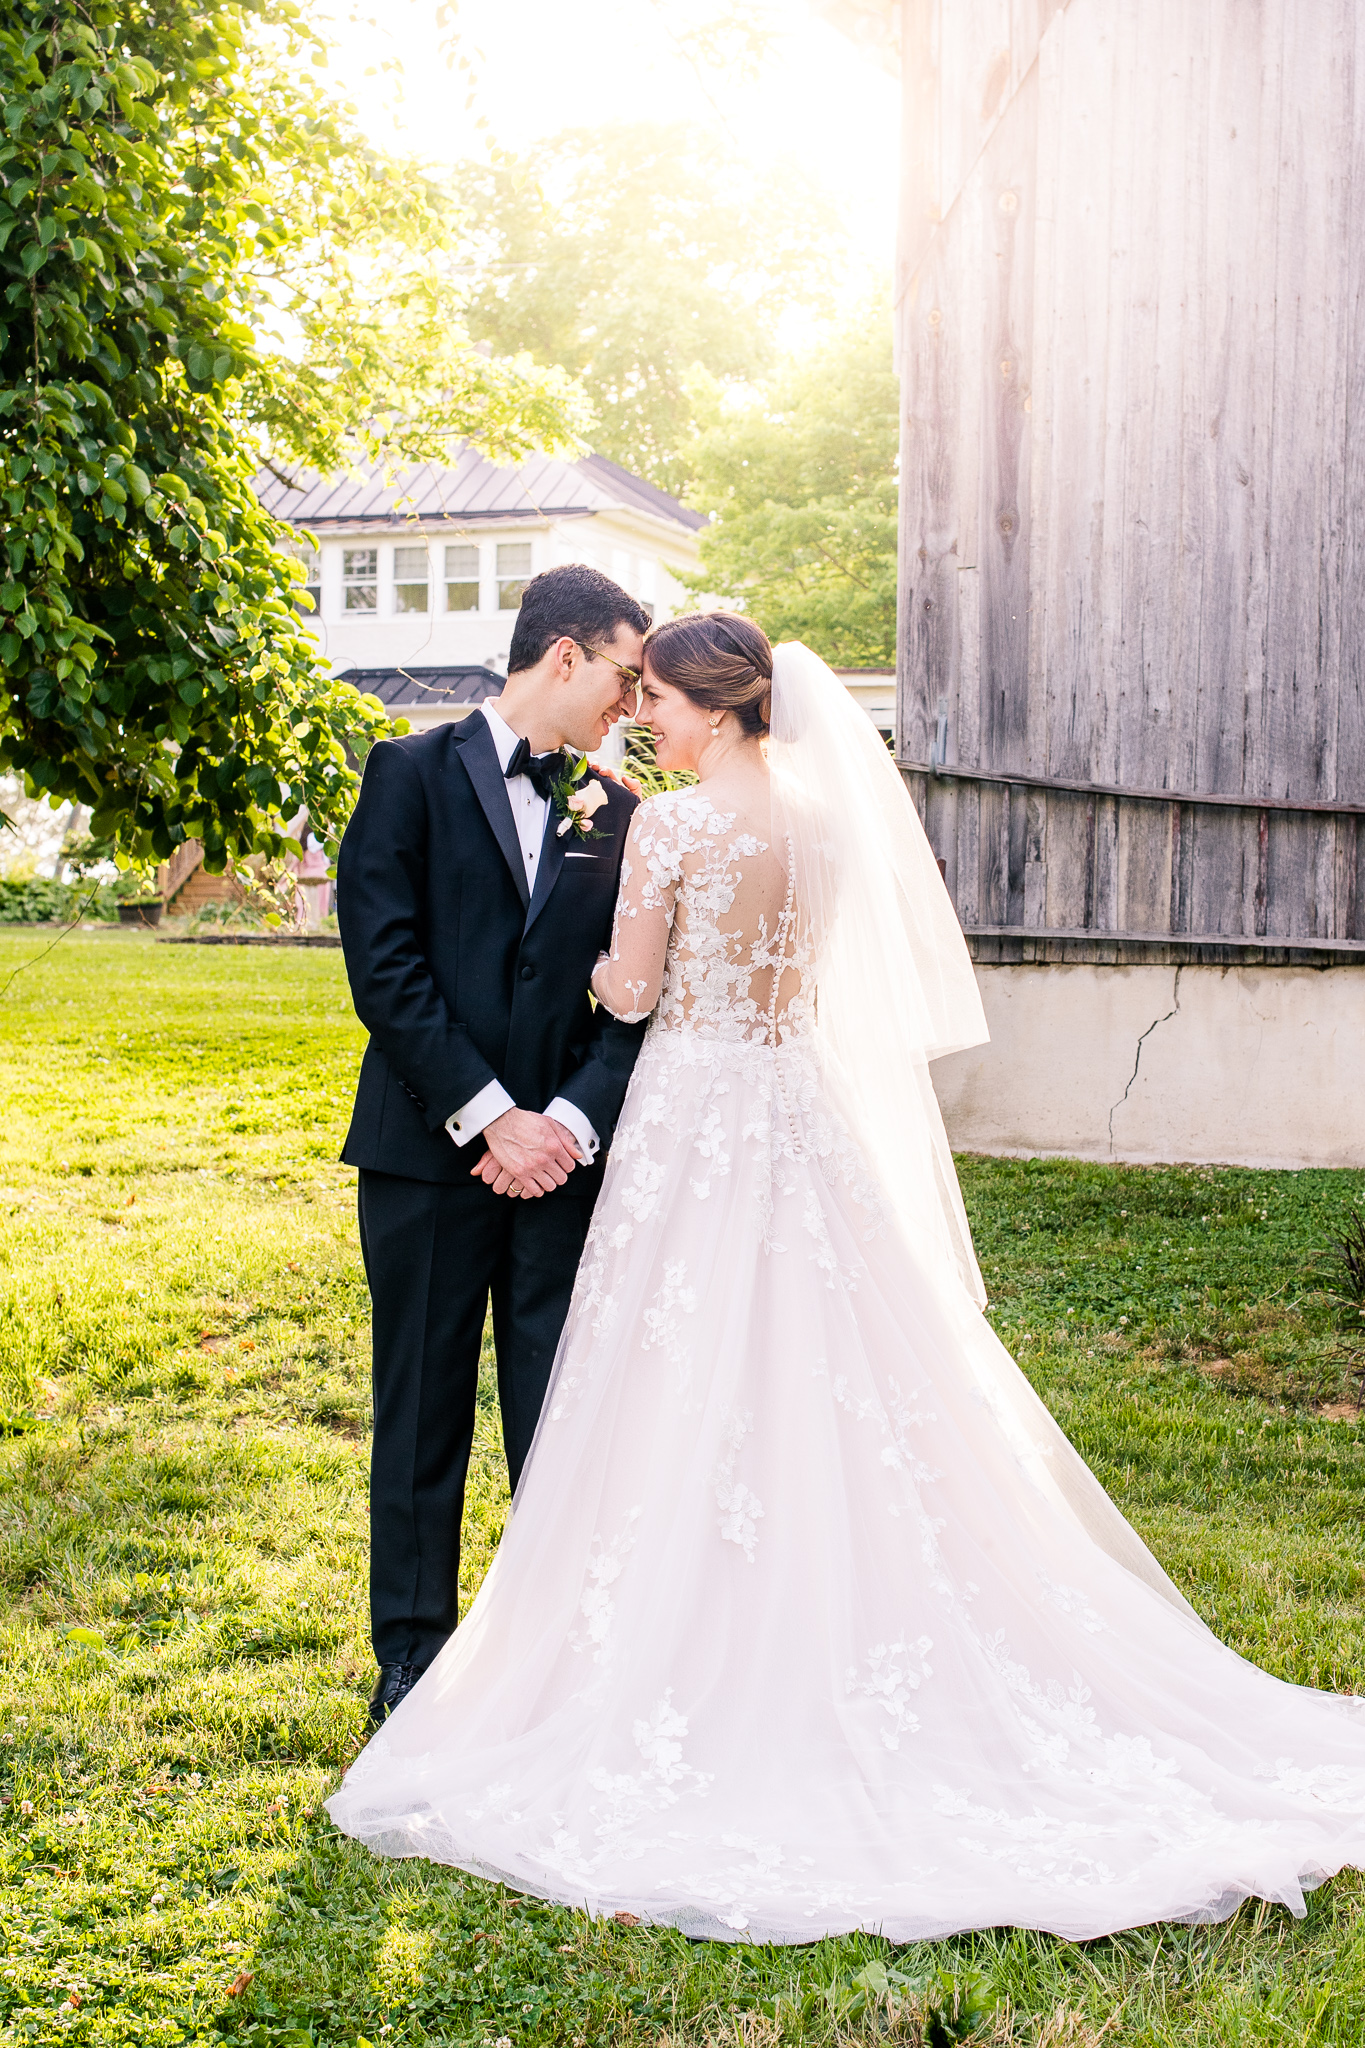 A bride and groom lean their foreheads together as the bride shows off the lace back of her dress during golden hour at The Barns at Hamilton Station Vineyard in Leesburg, Northern Virginia